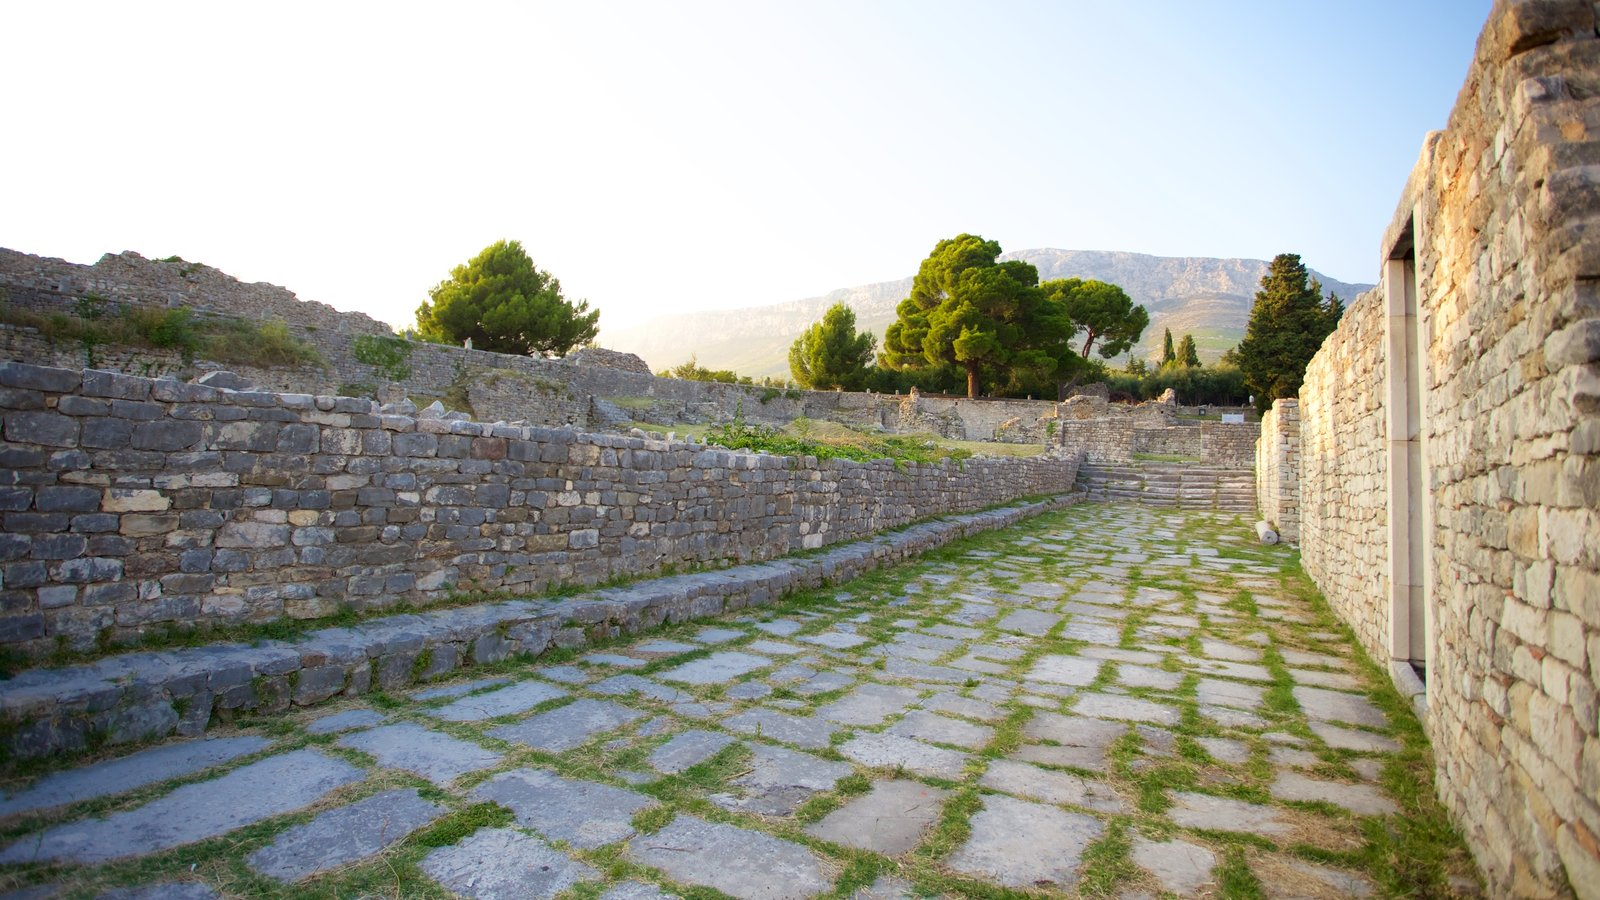 Salona Ruins which includes heritage elements and a ruin